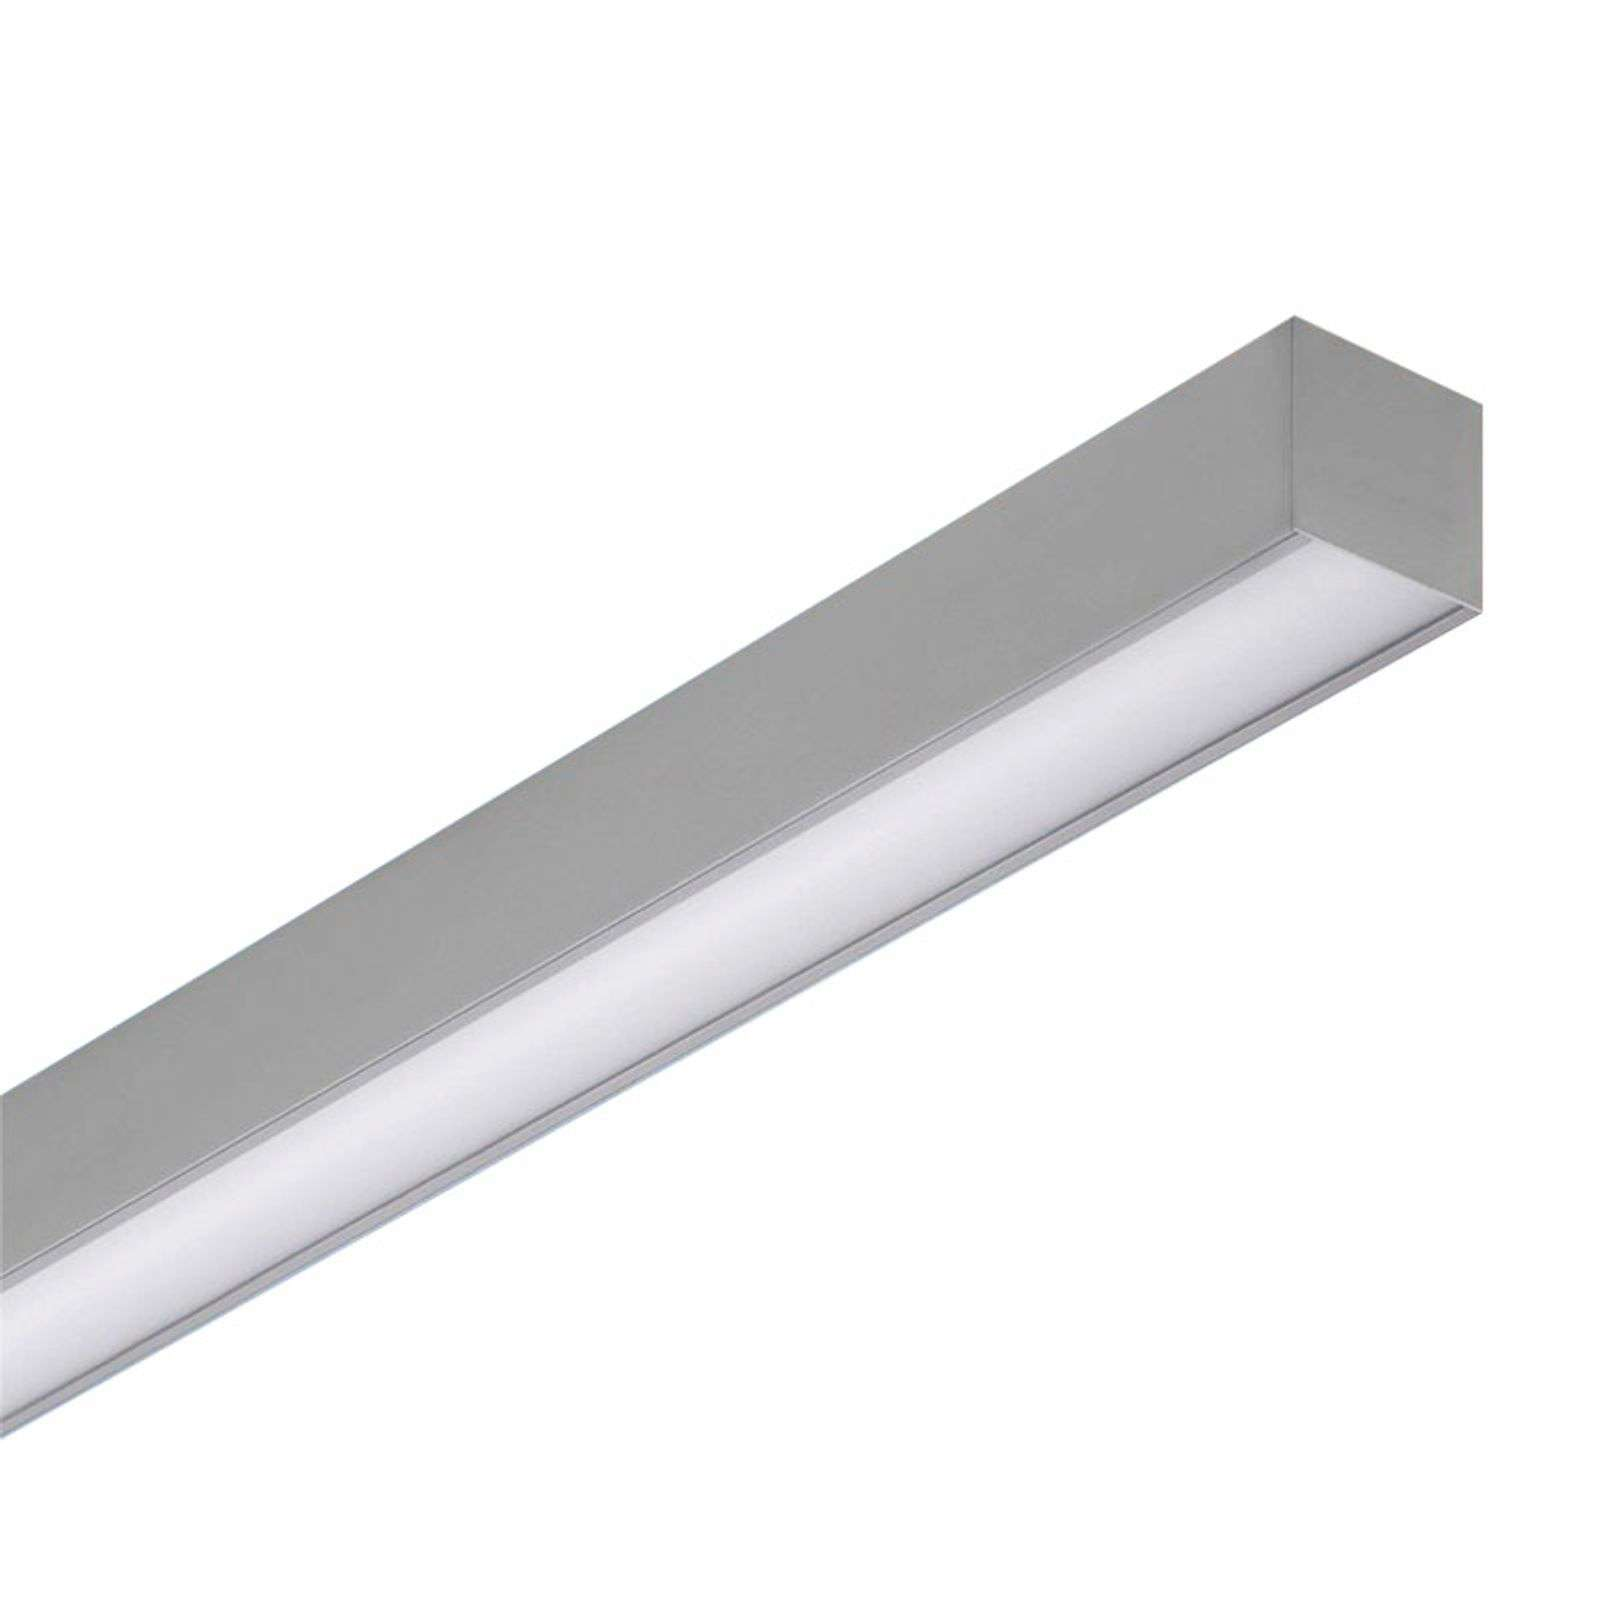 Applique LED LKPW075 efficace, 3 000 K